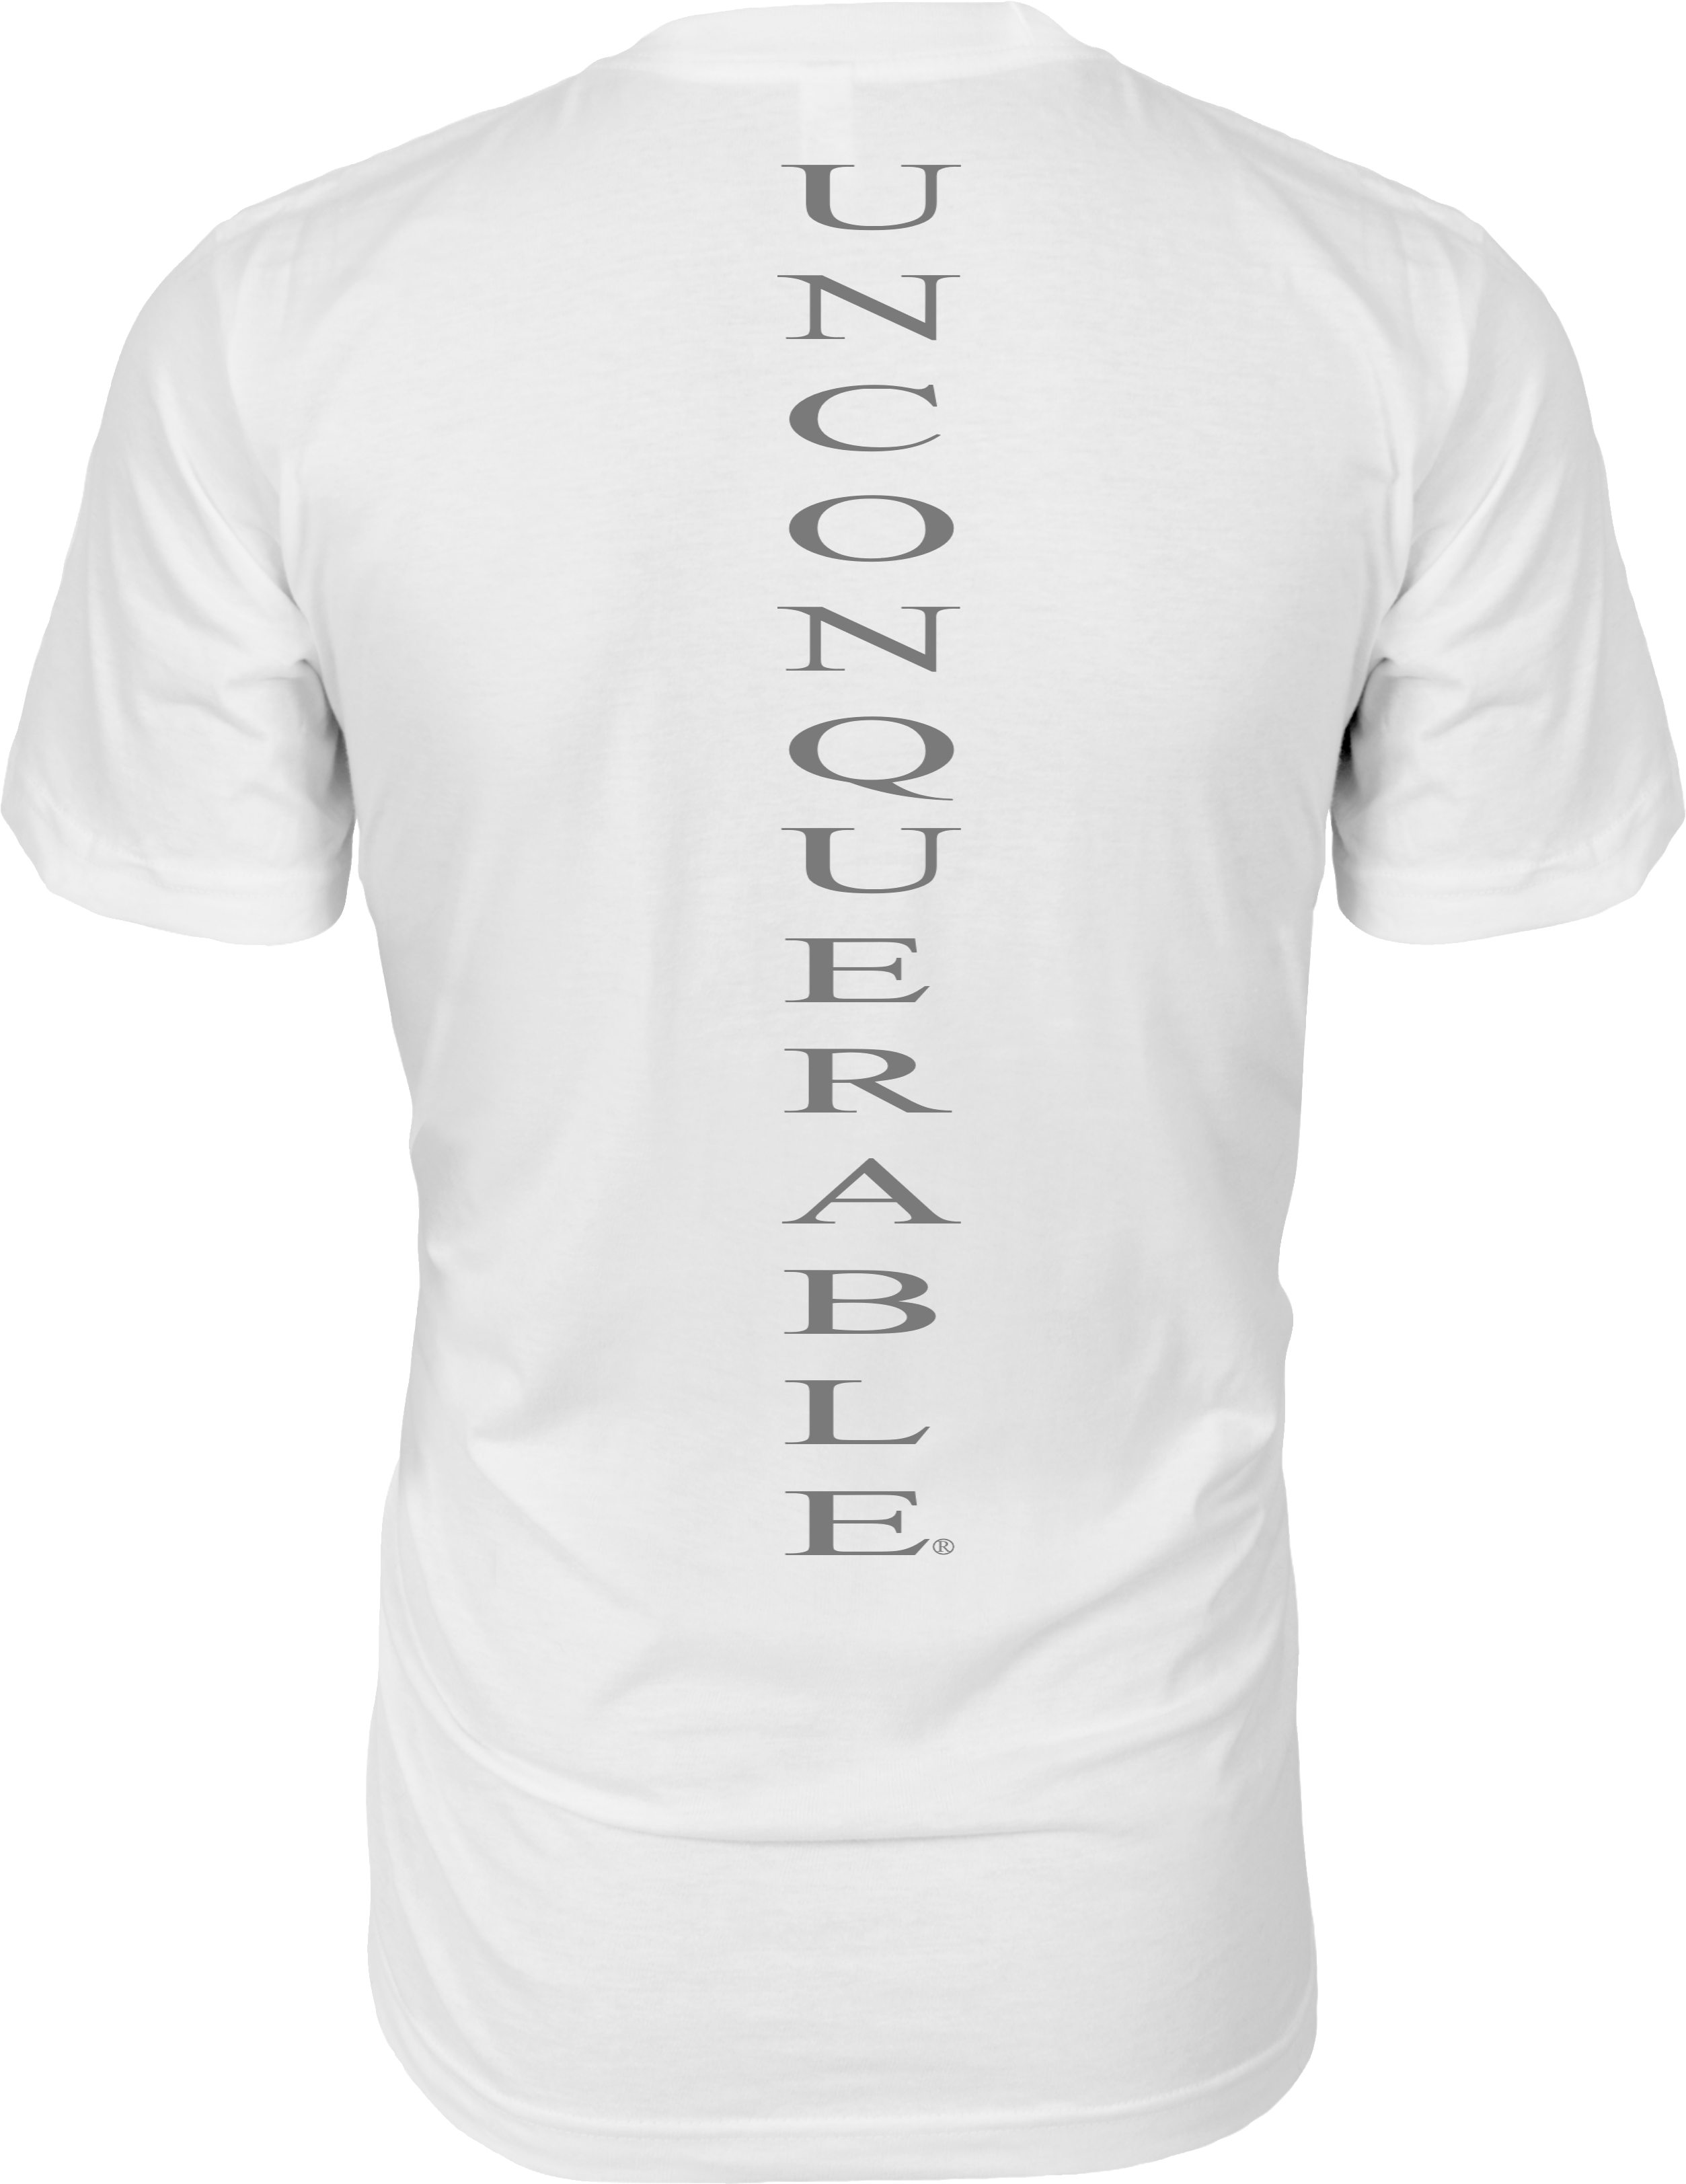 Plain White T Shirt Transparent Png Clipart Free Download Ya